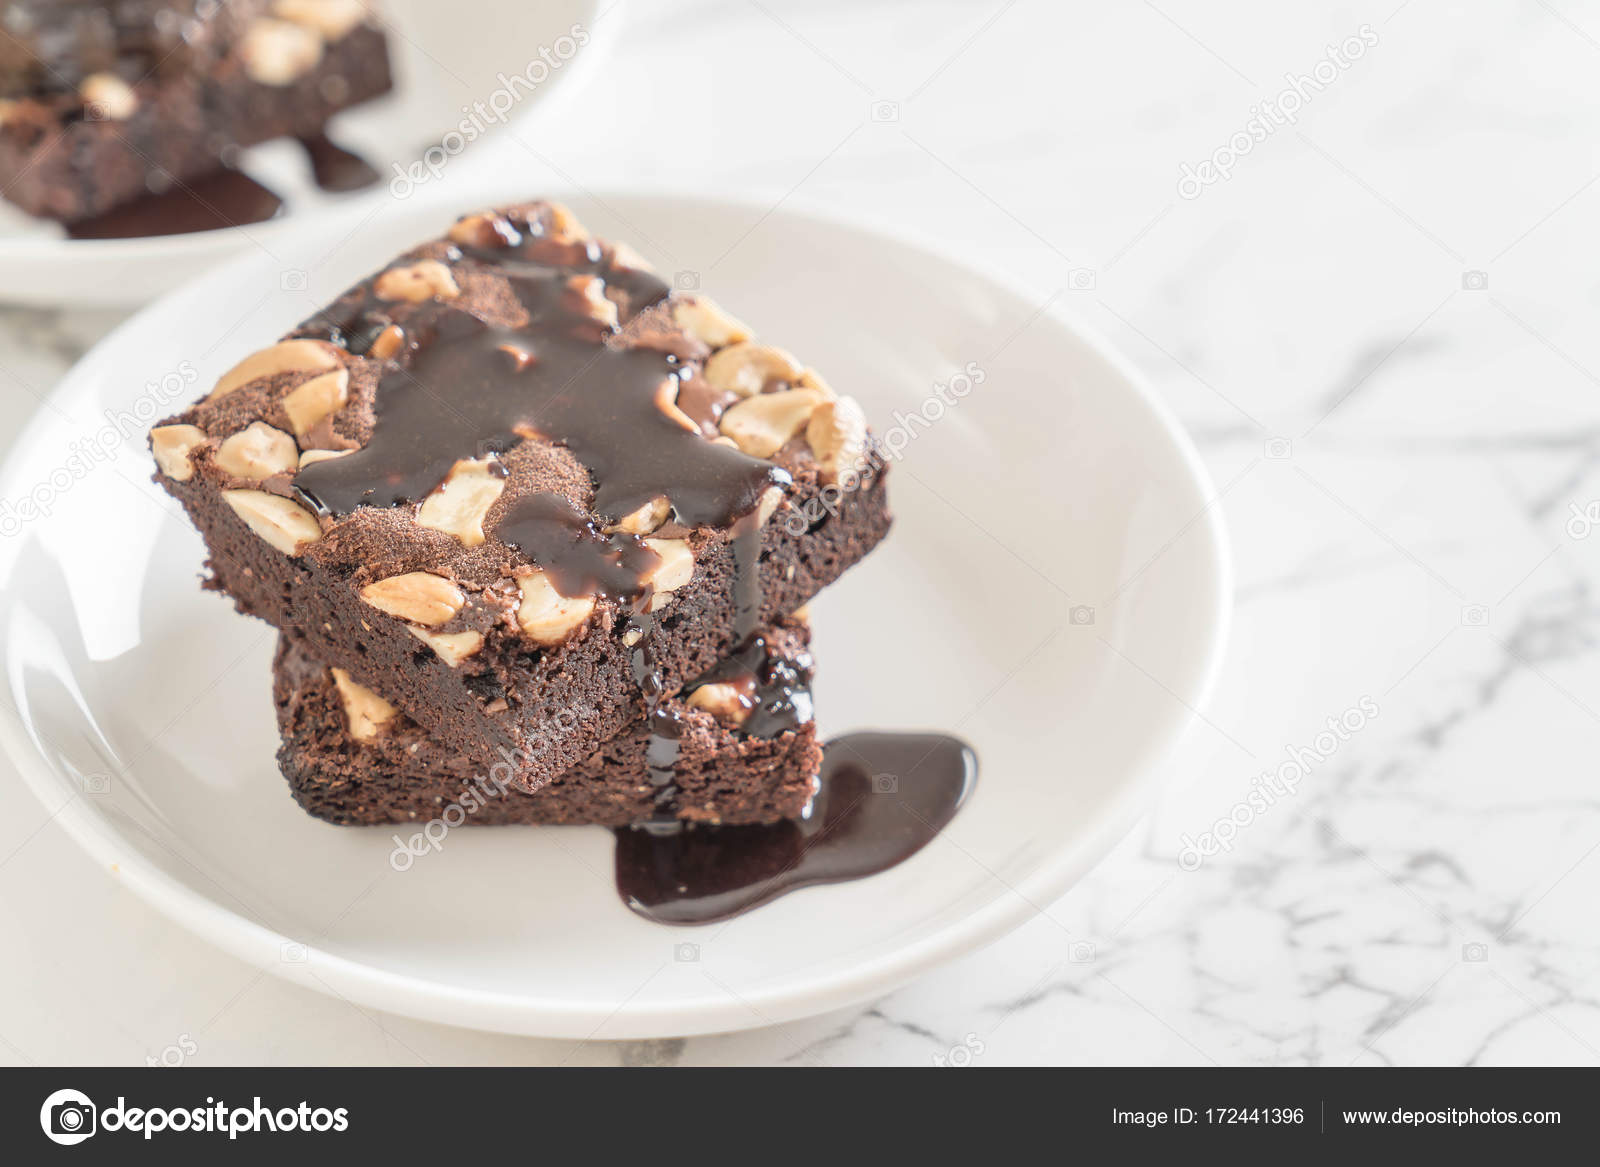 Chocolate Brownies With Chocolate Sauce Stock Photo C Topntp